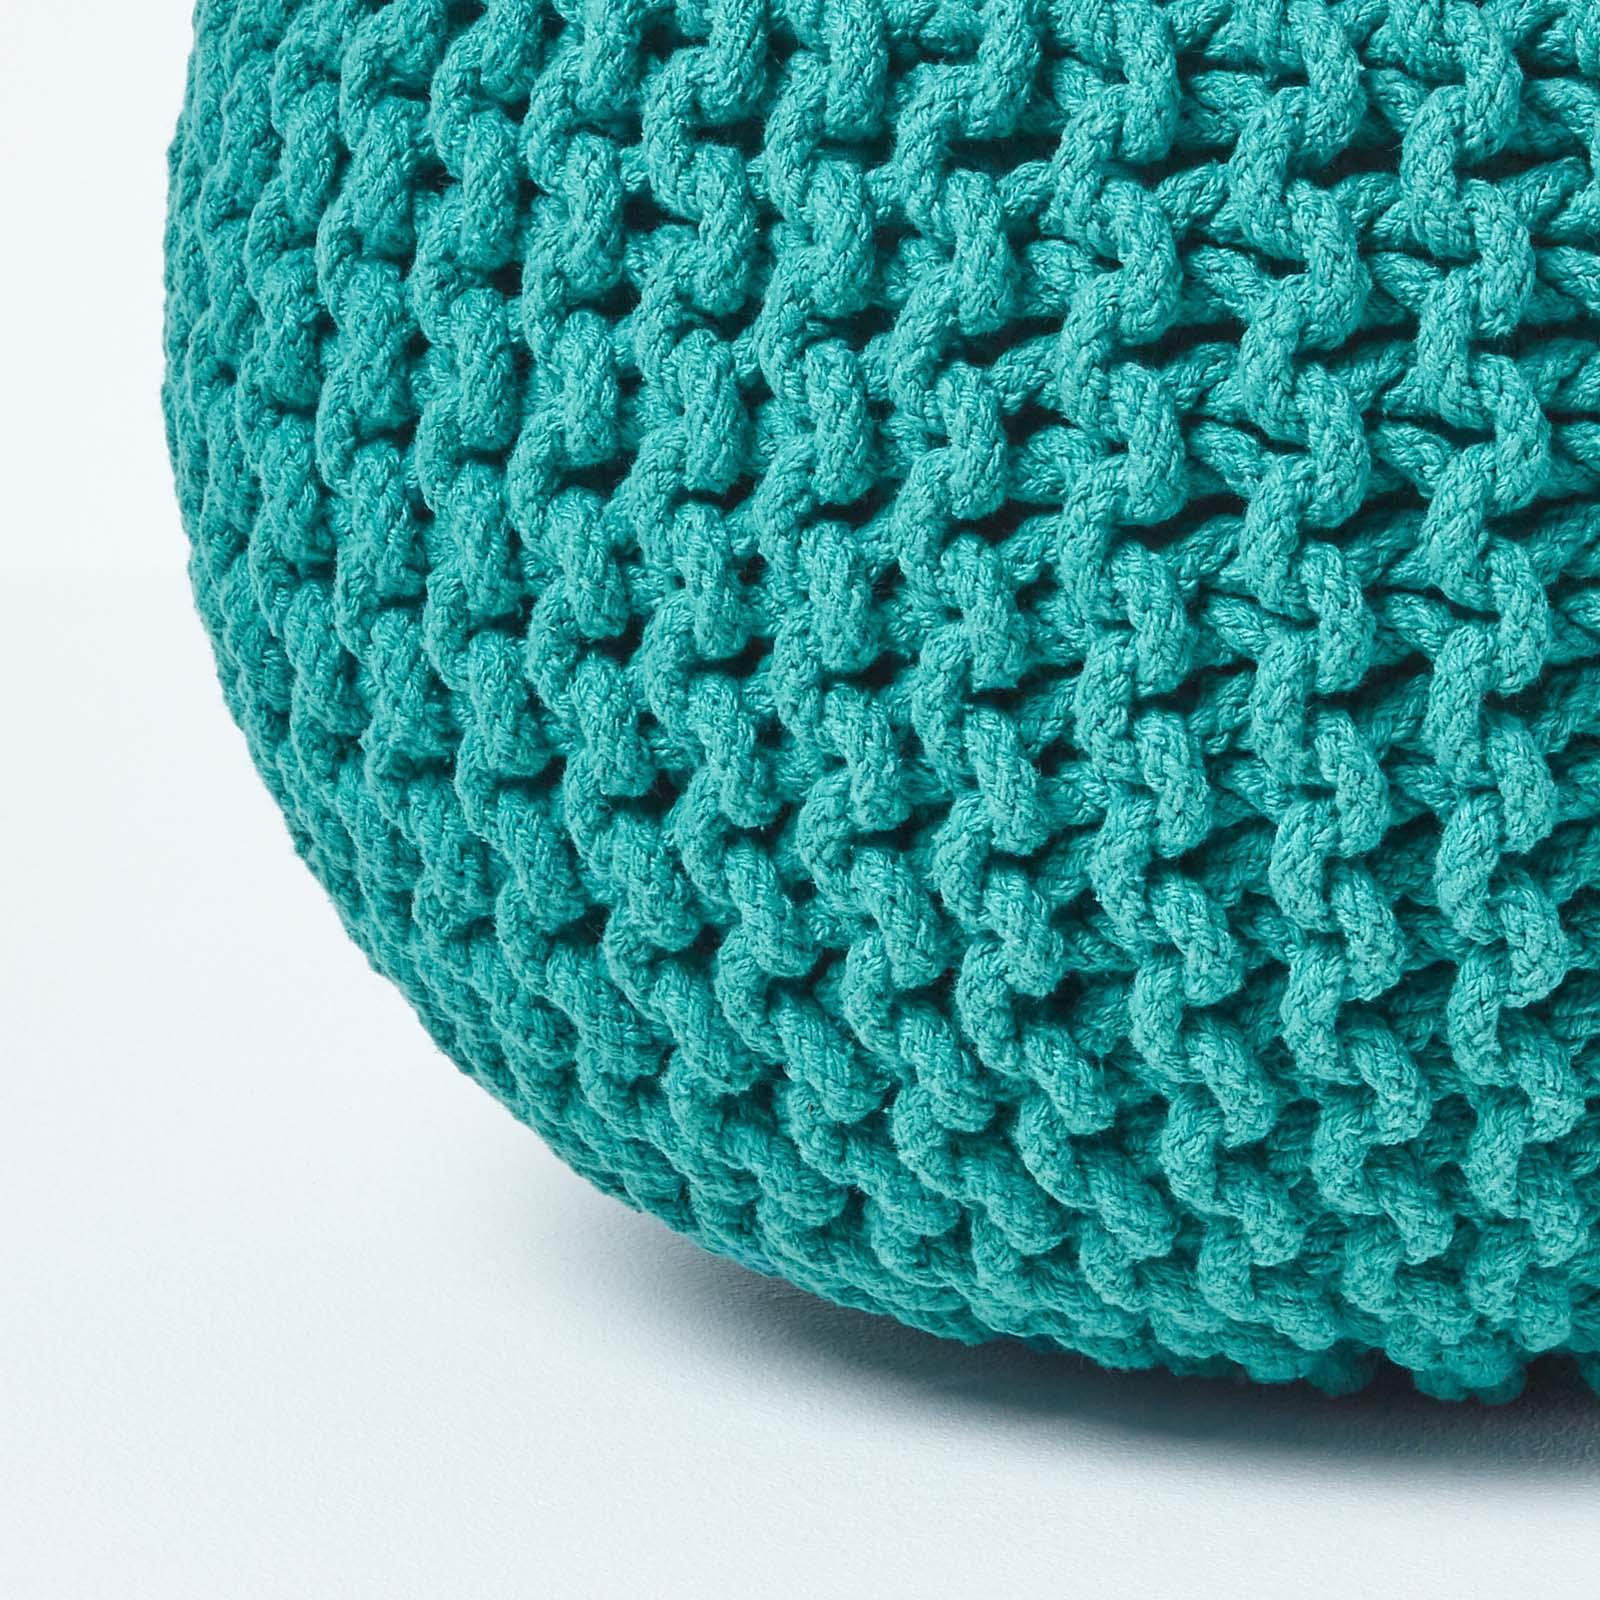 Hand-Knitted-100-Cotton-Pouffes-Round-Sphere-Or-Cube-Square-Chunky-Footstools thumbnail 196